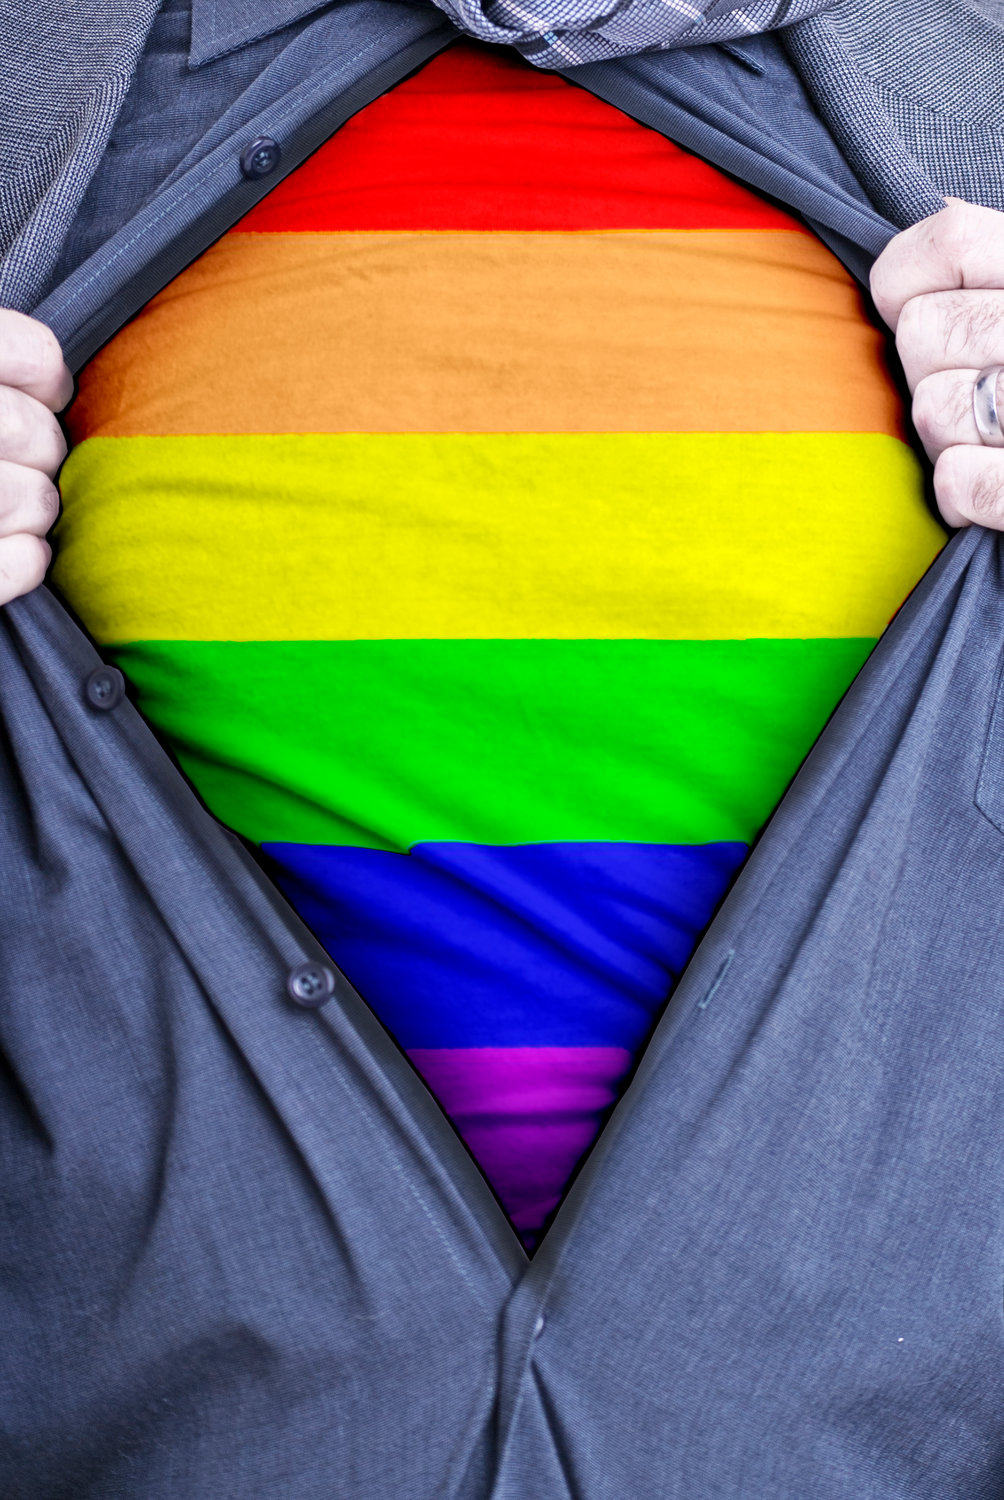 A Gay businessman rips open his shirt and shows how proud he is to be gay by revealing the rainbow flag beneath printed on a t-shirt